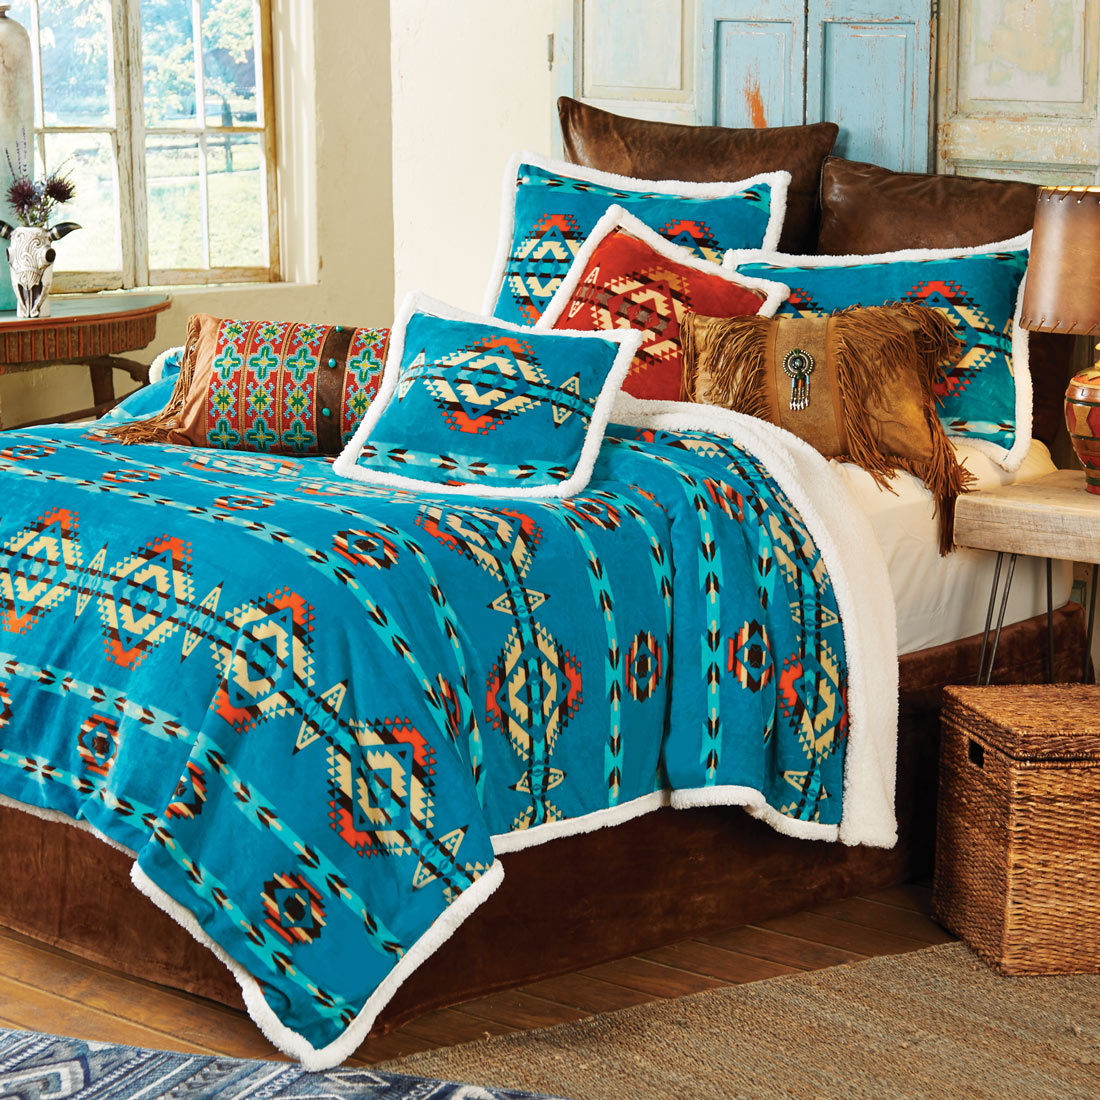 Southwestern Turquoise Plush Bed Set - Queen - CLEARANCE